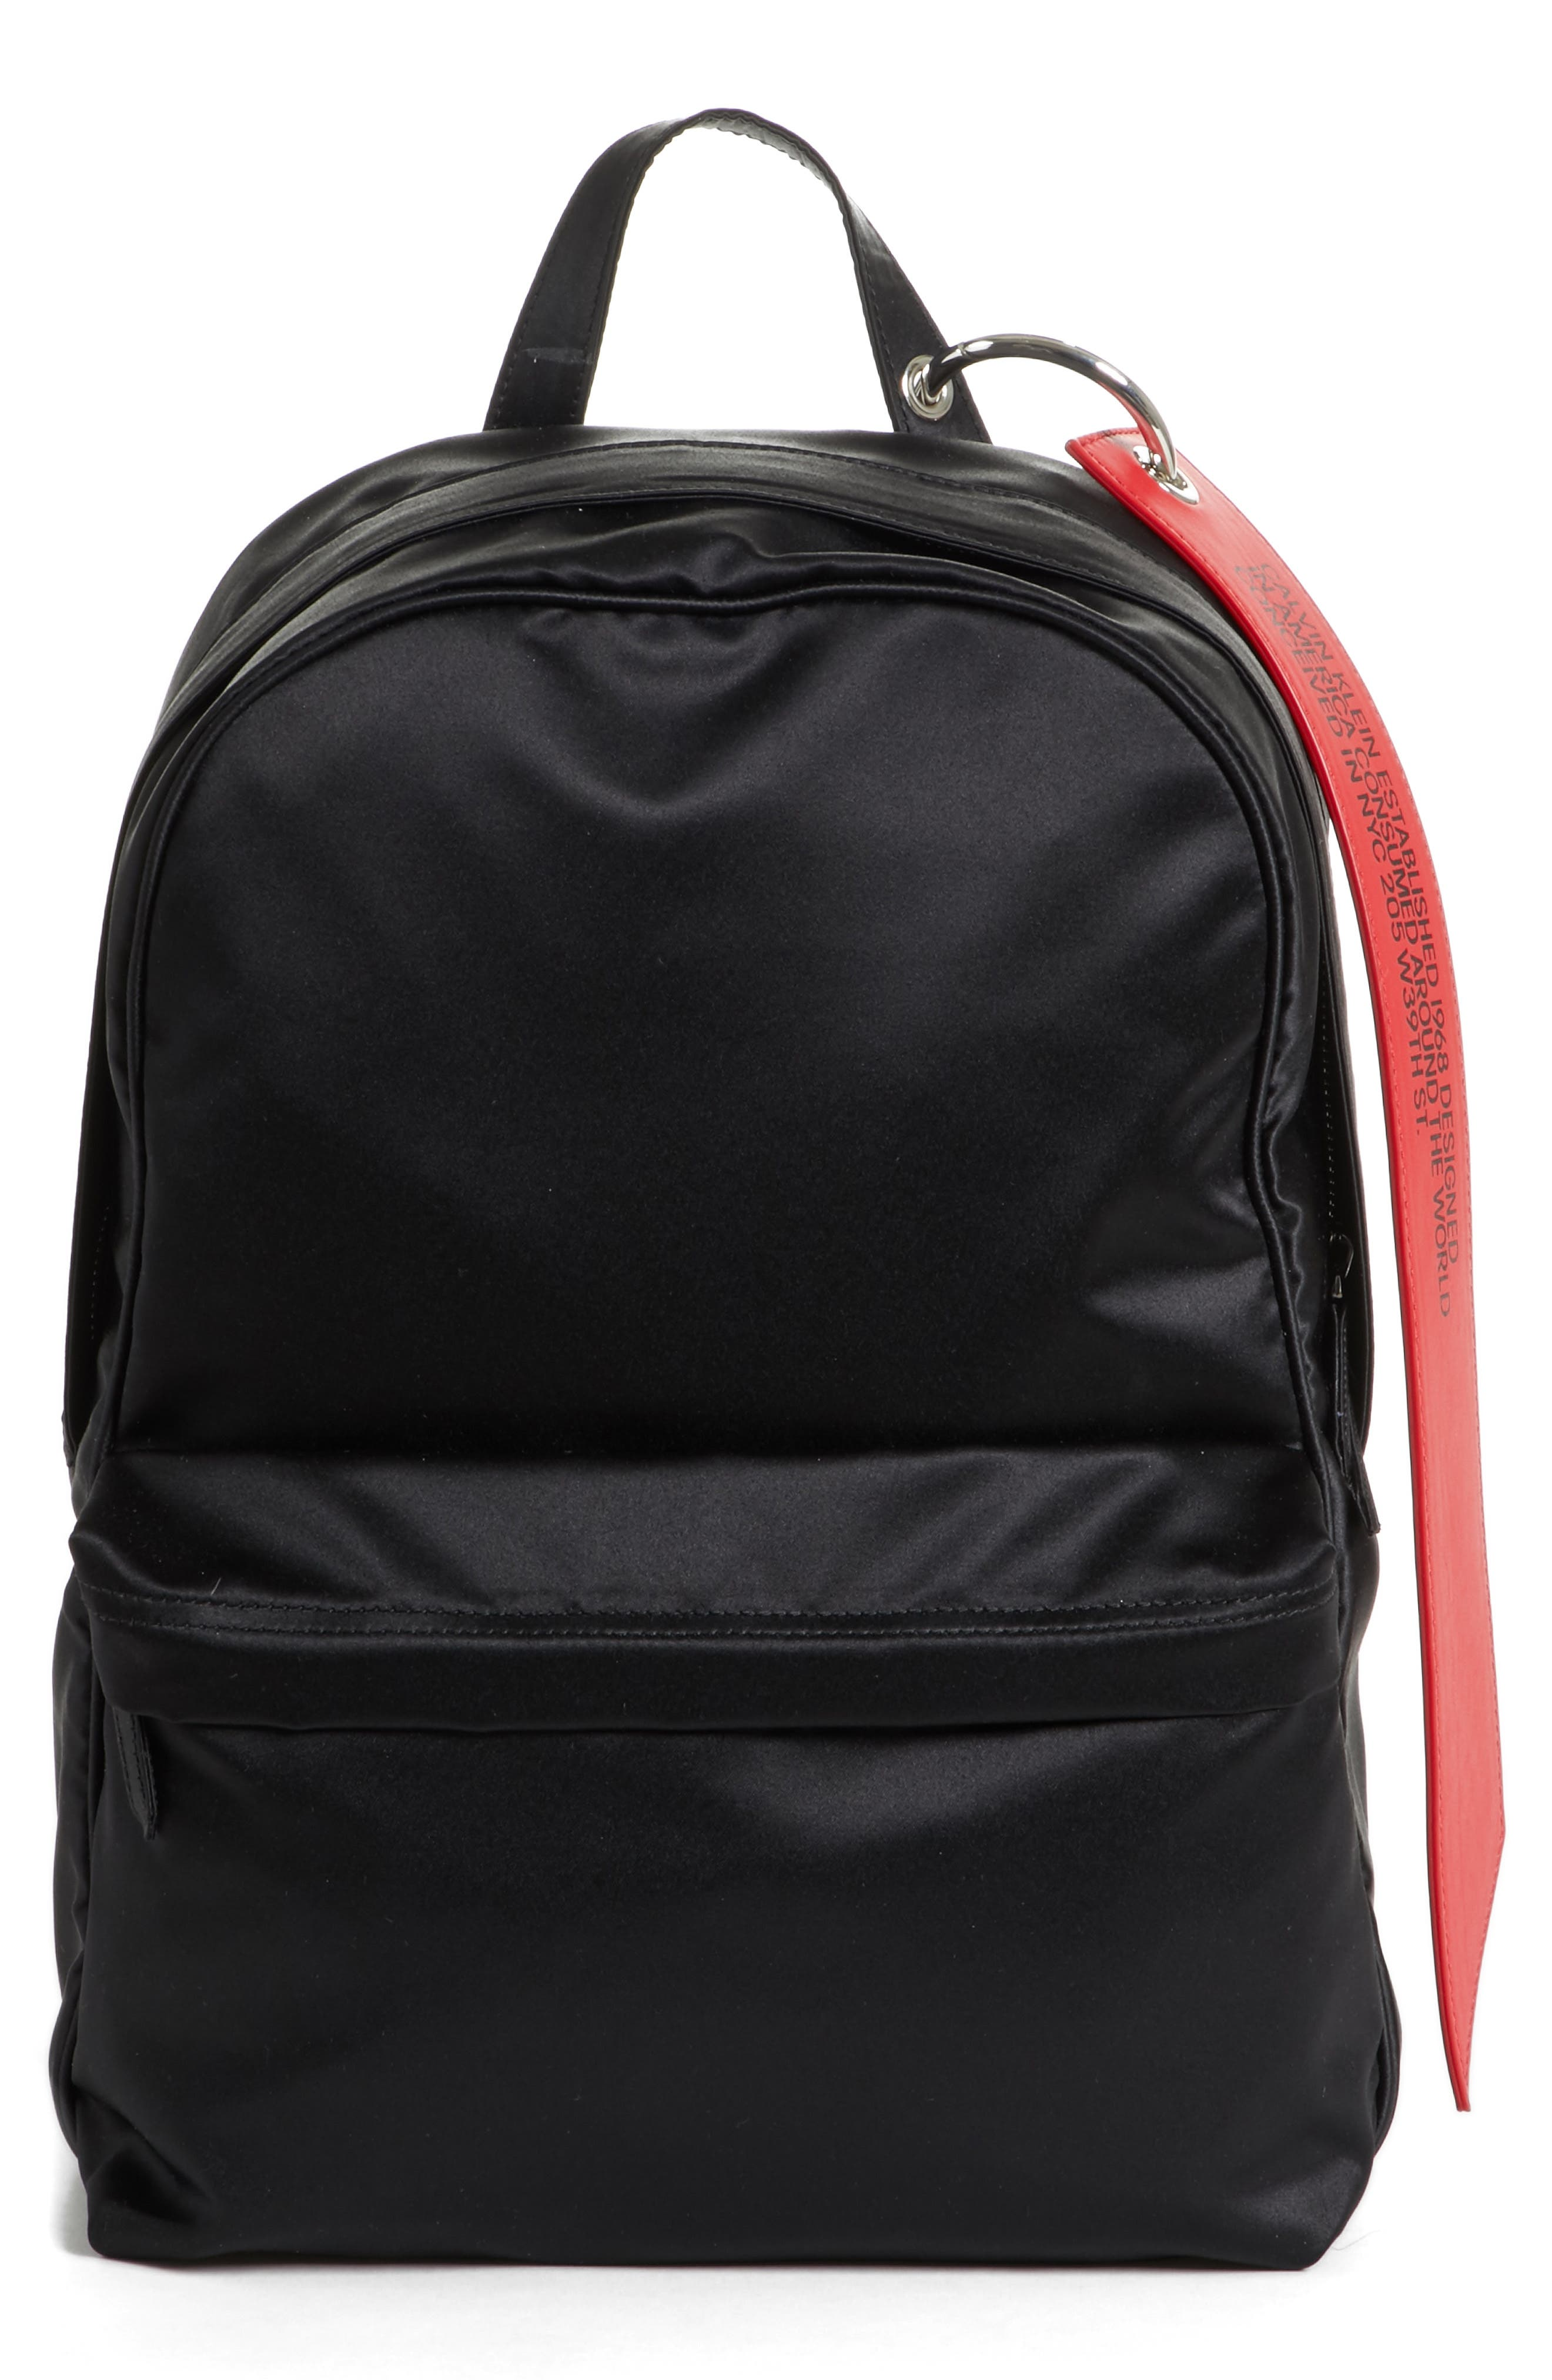 CALVIN KLEIN 205W39NYC x Andy Warhol Foundation Nylon Backpack